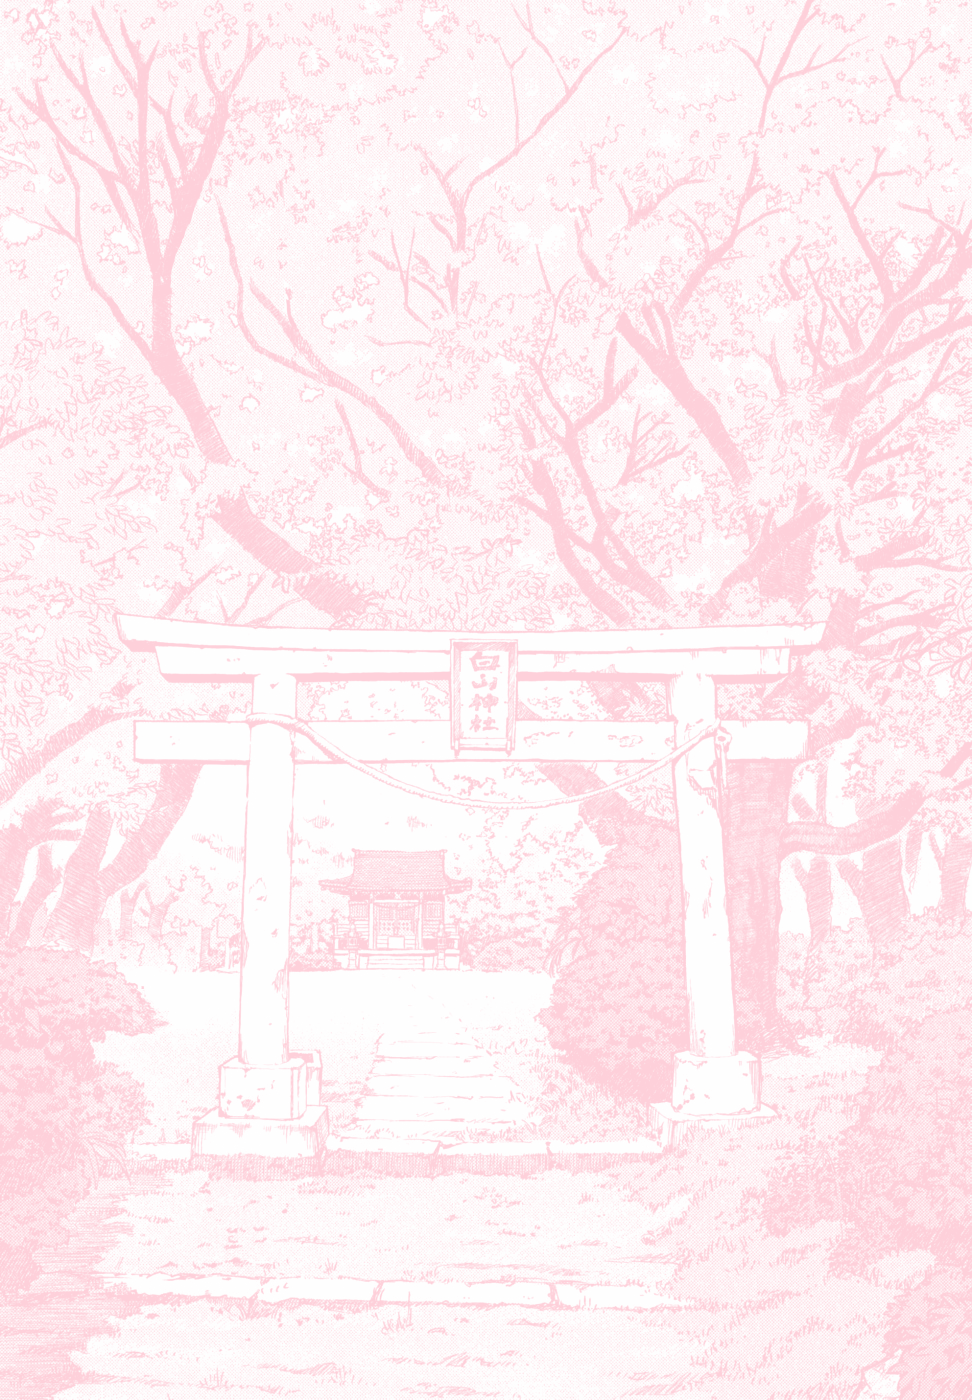 Aesthetic Pink Anime Wallpapers Top Free Aesthetic Pink Anime Pink Wallpaper Anime Anime Wallpaper Pastel Pink Aesthetic